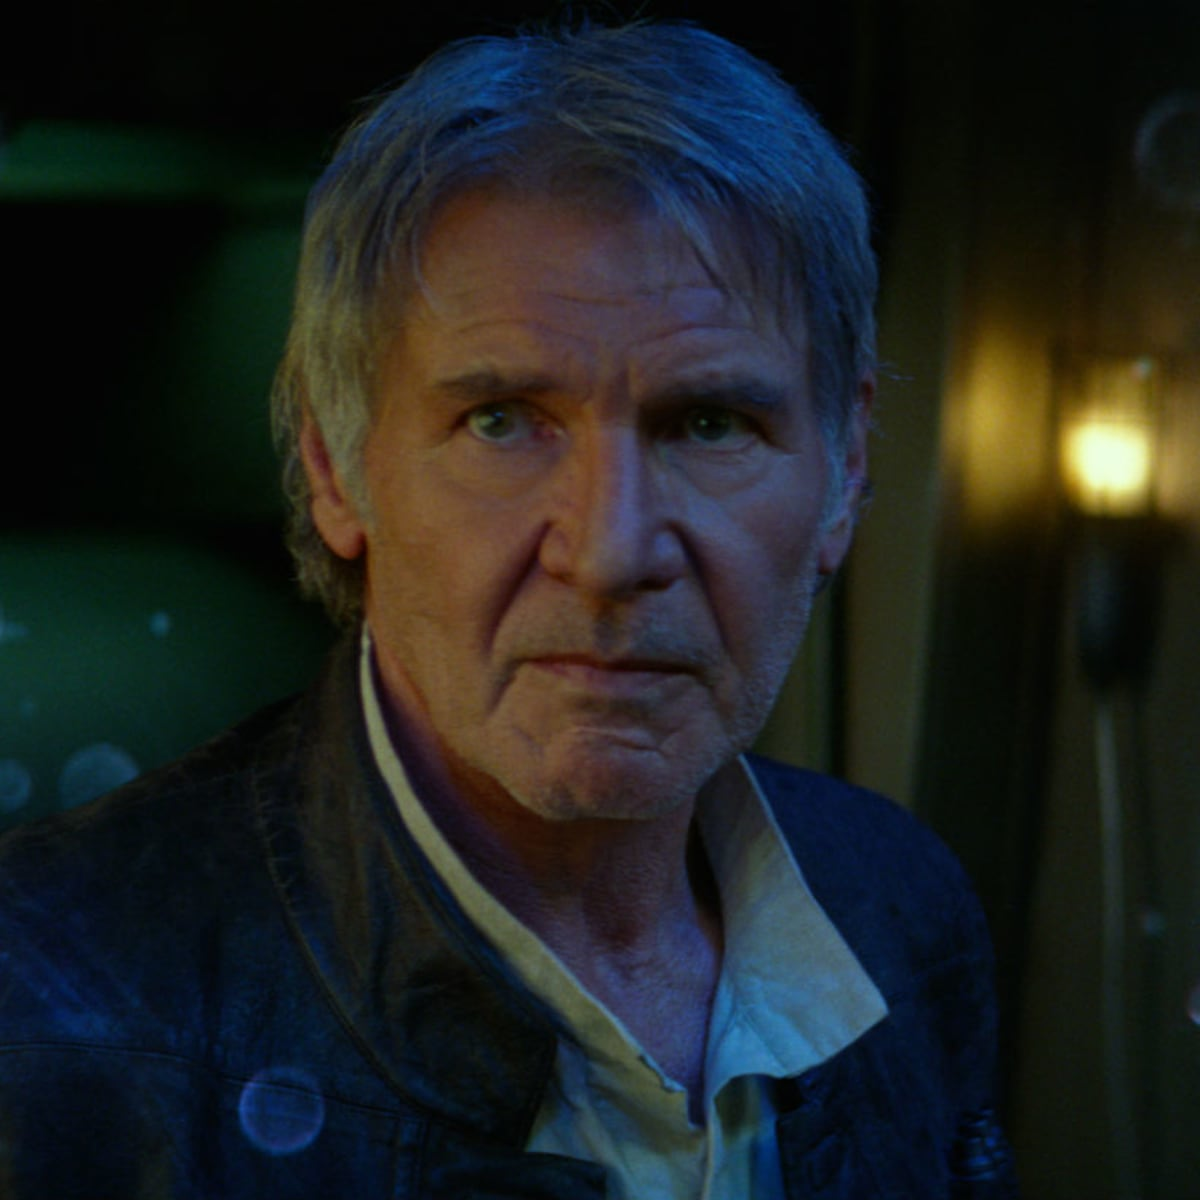 Harrison Ford in Star Wars: The Force Awakens